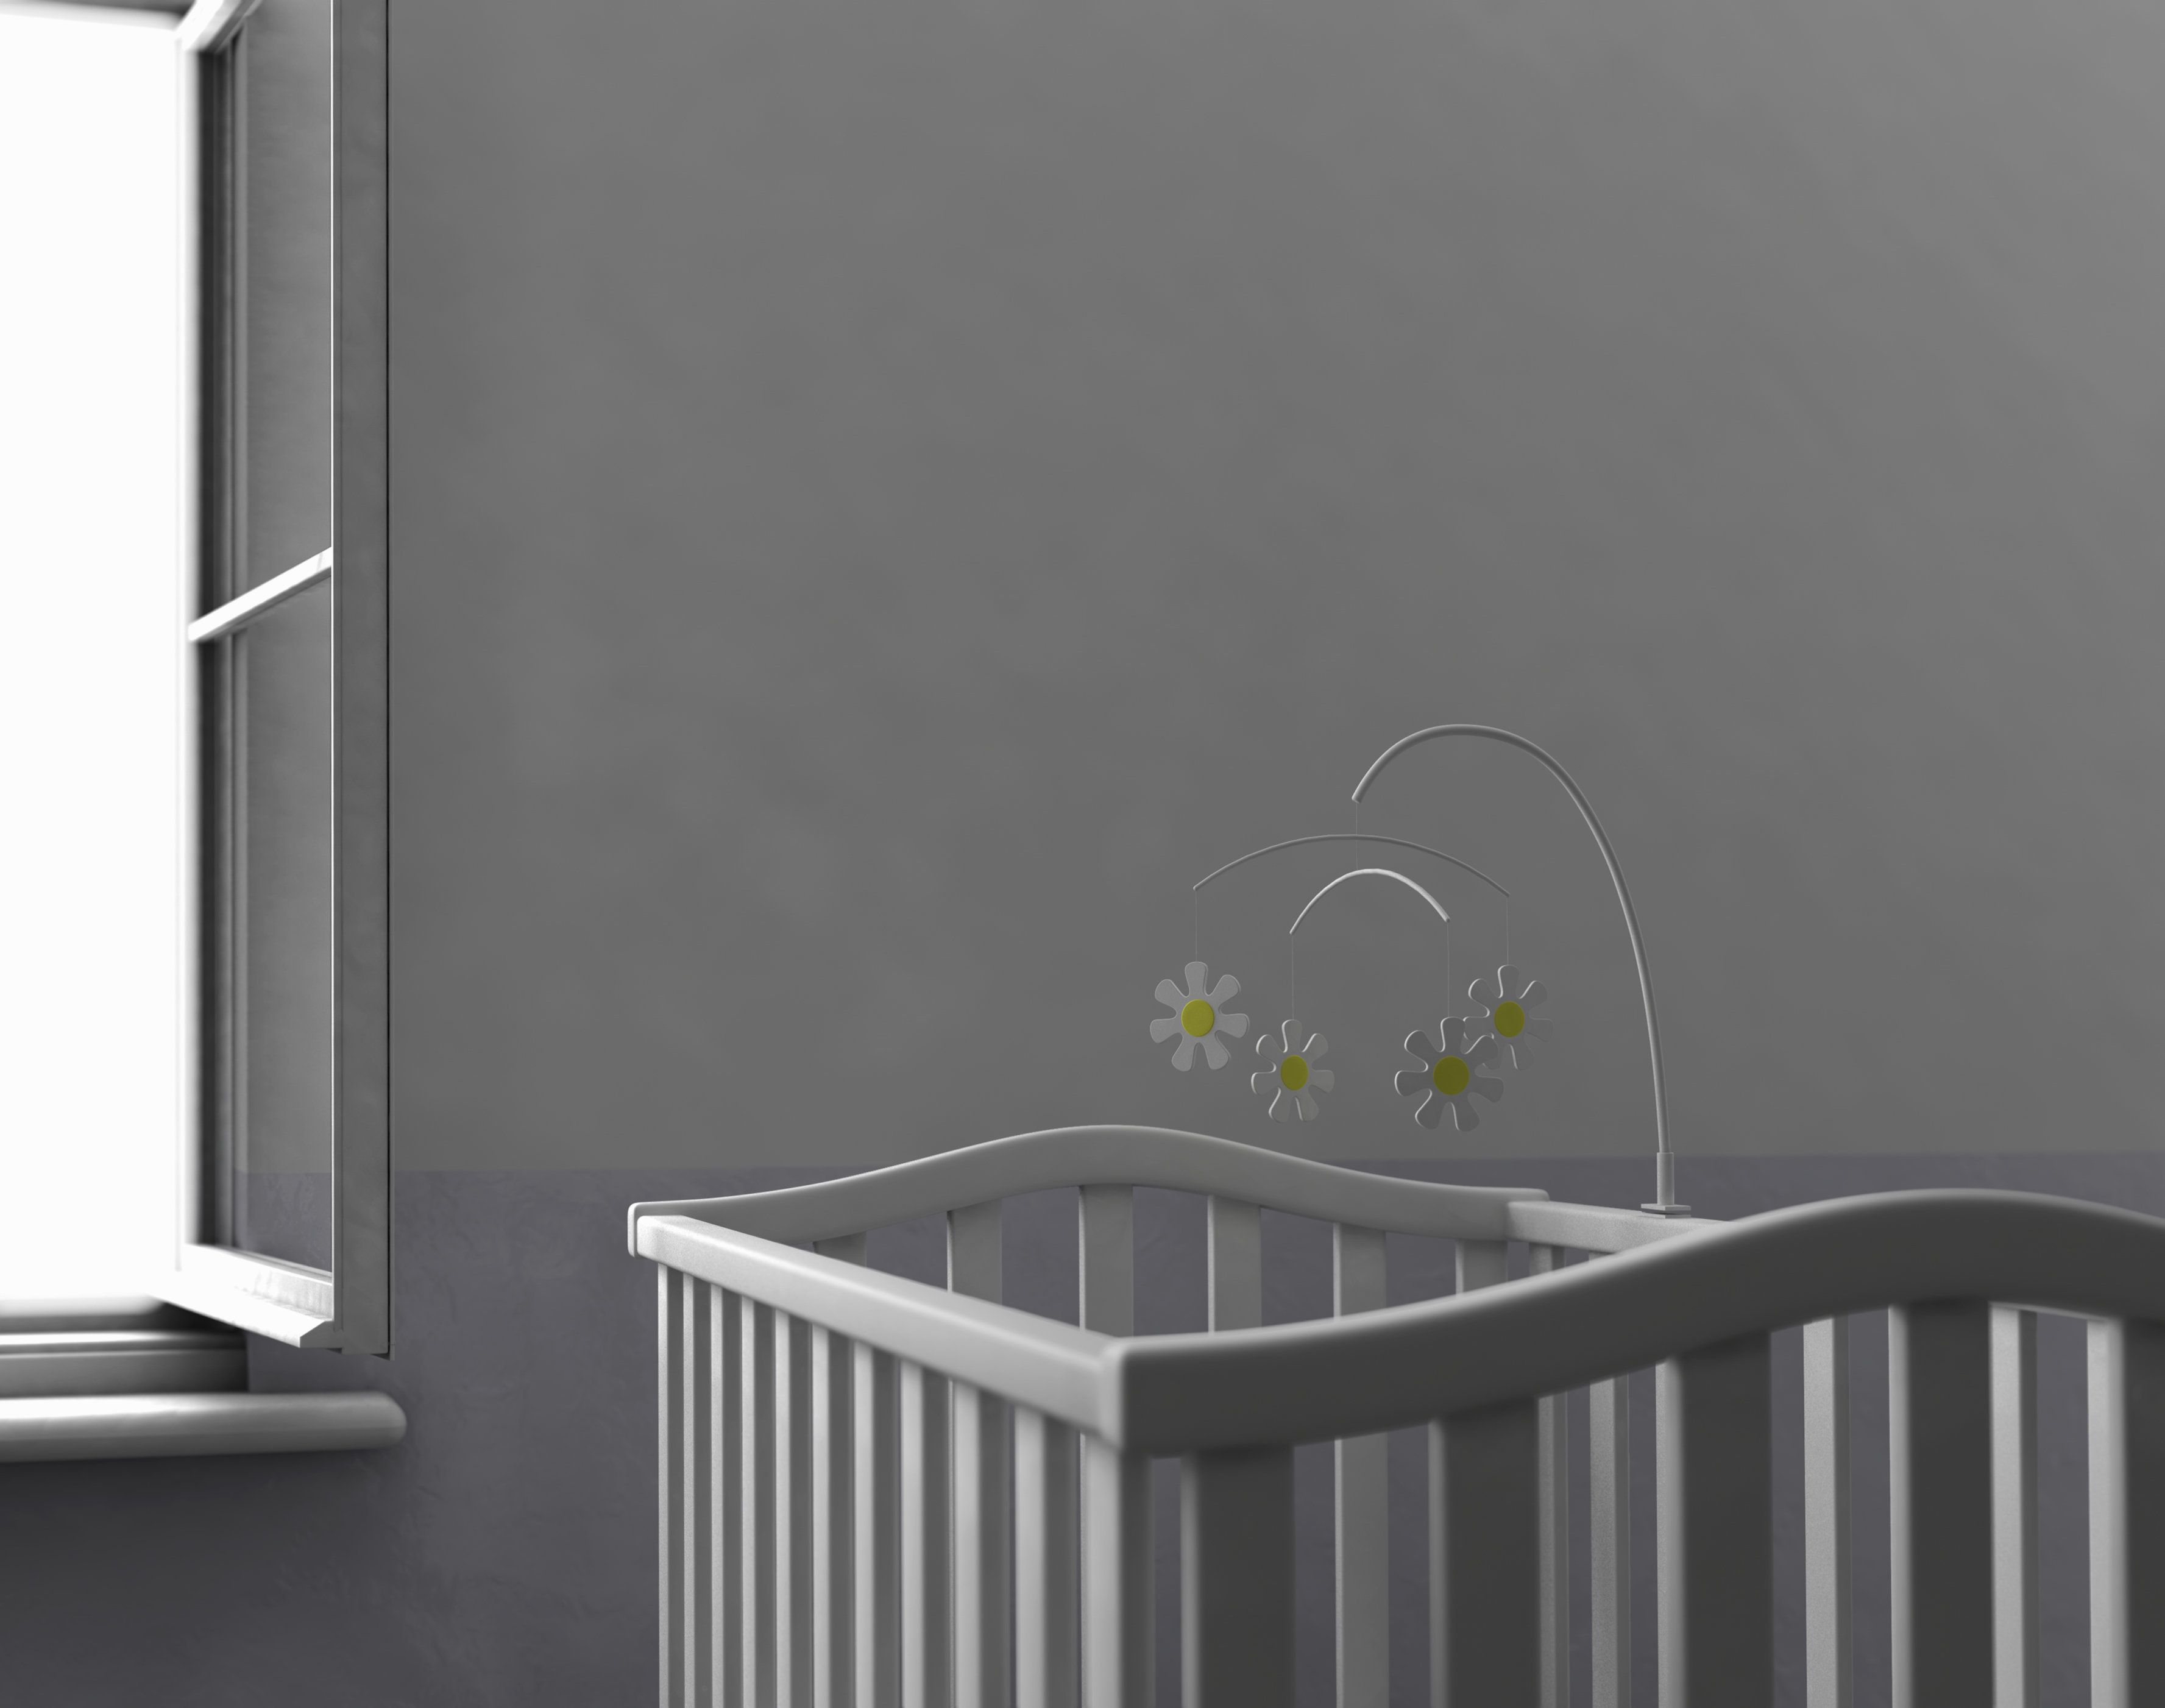 Empty crib by open window (Digitally Generated Image)